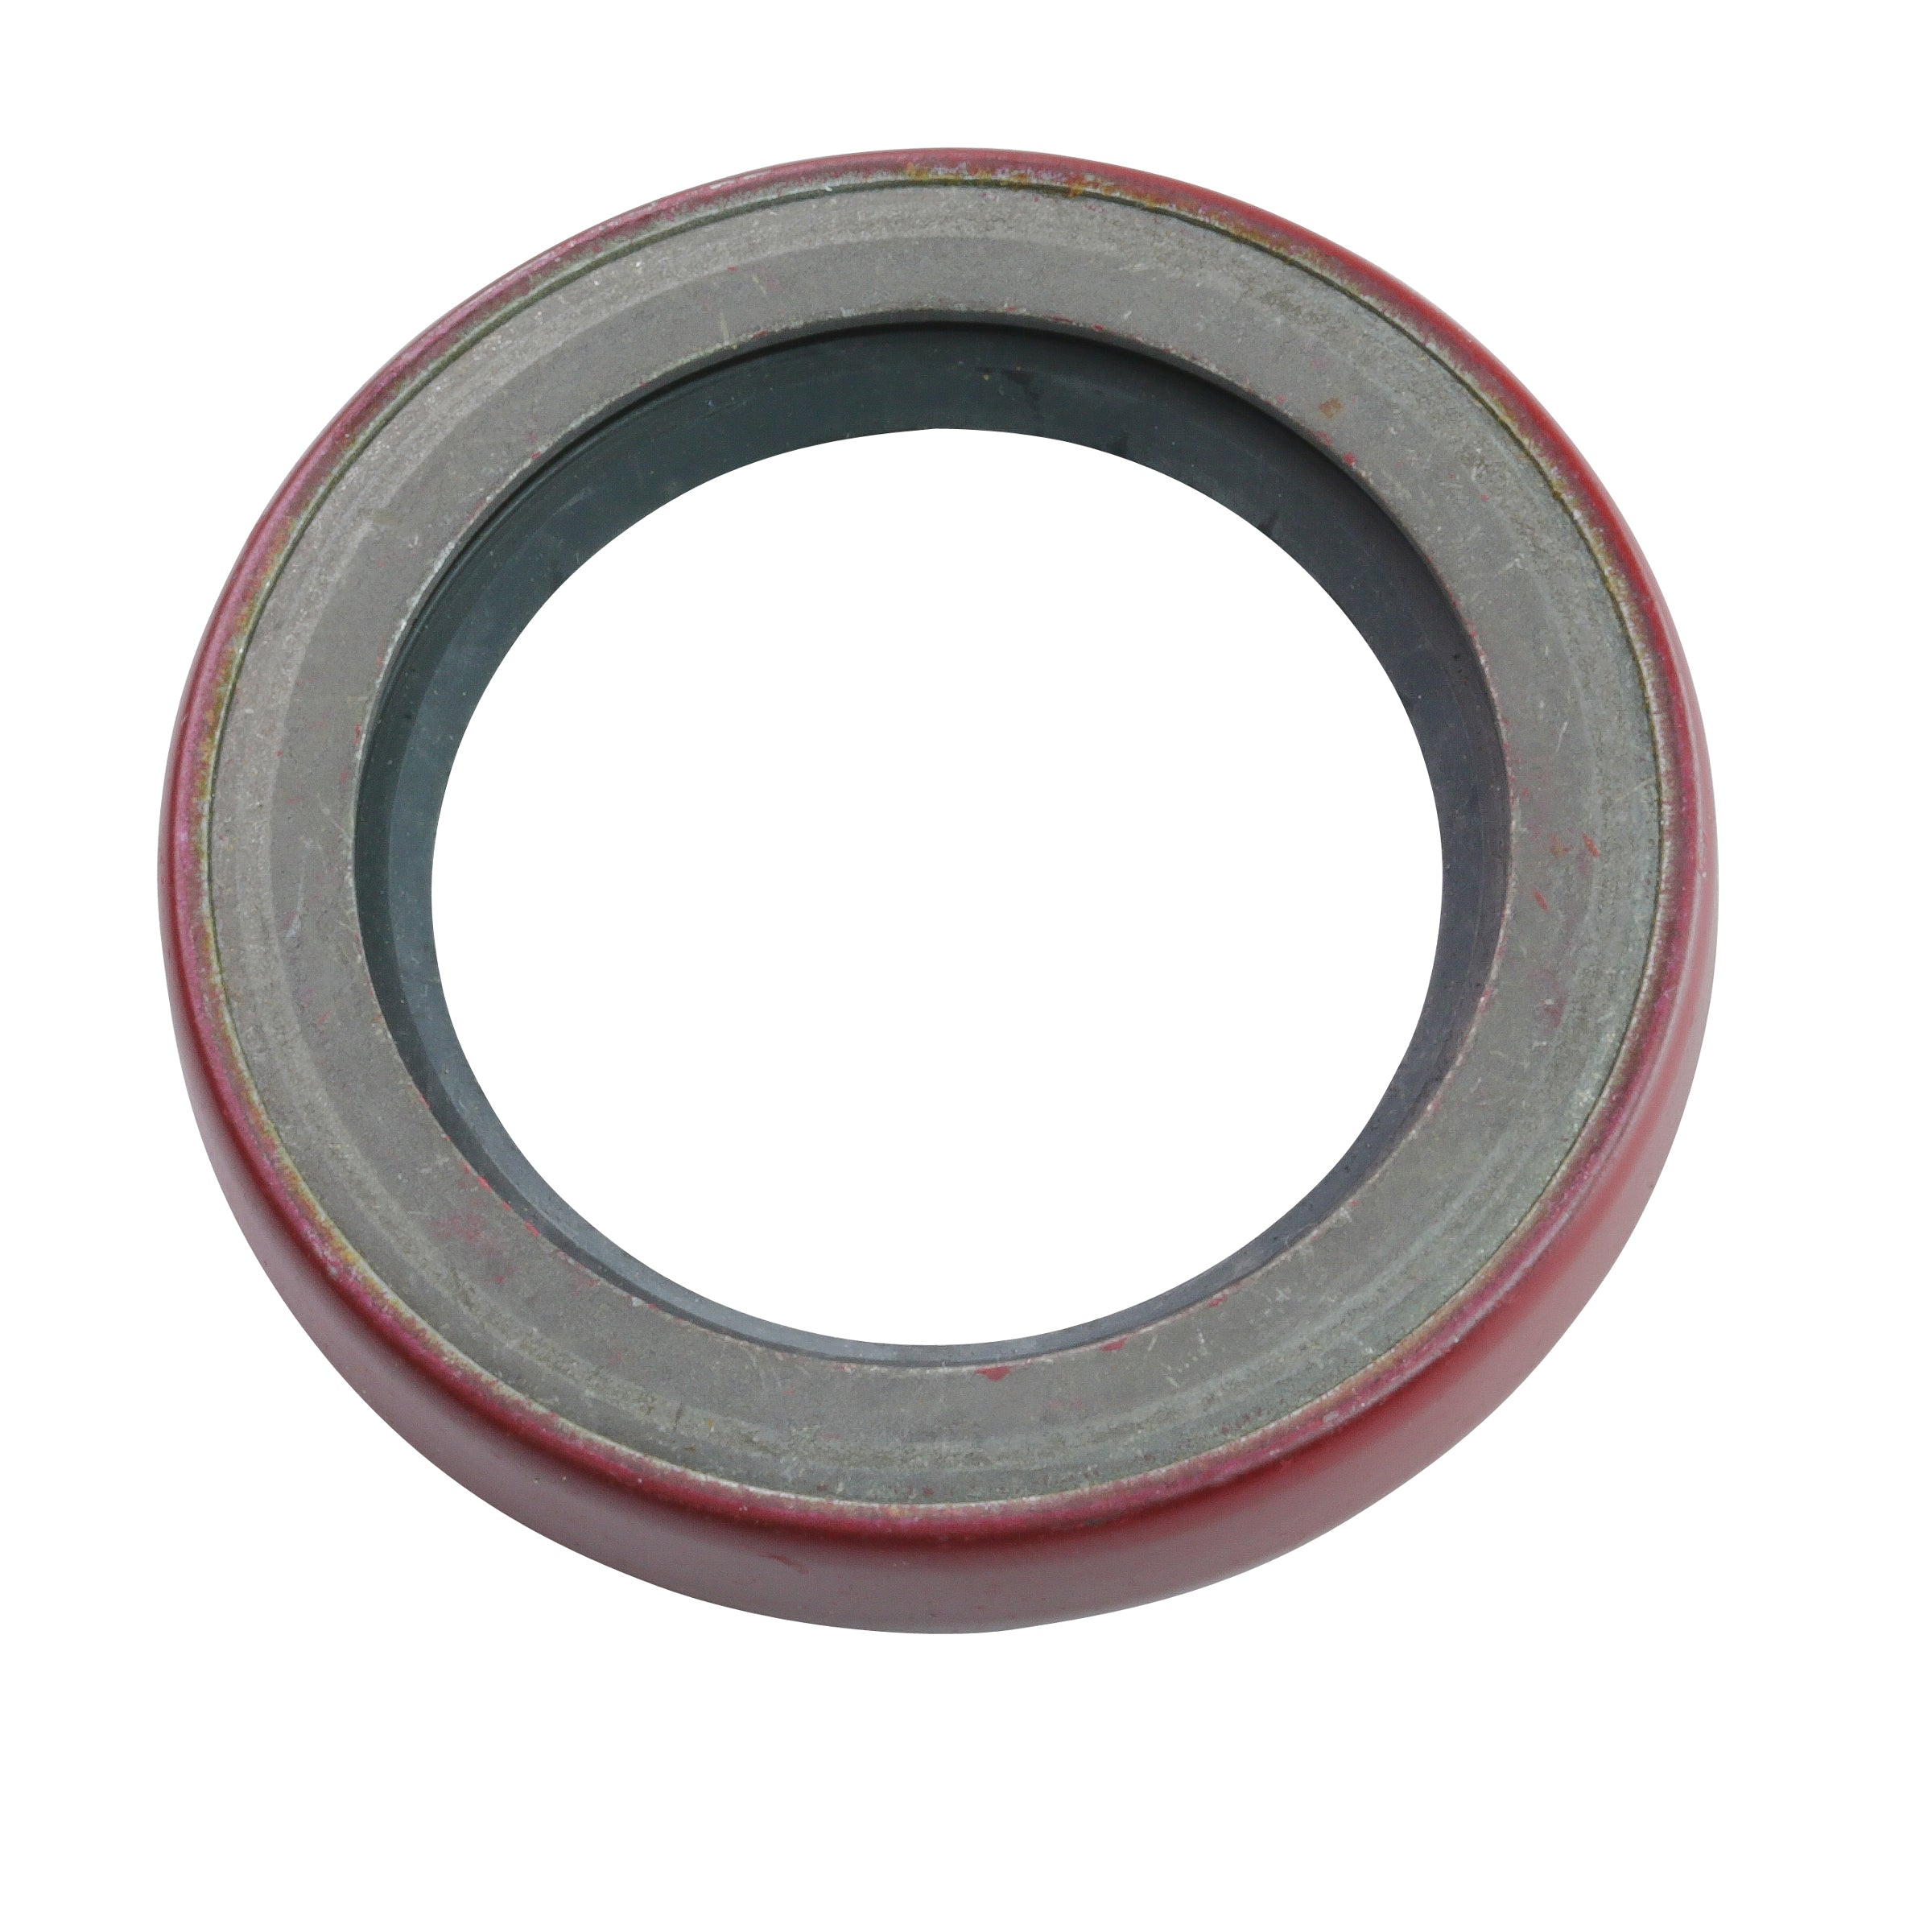 Main Drive Oil Seal • 1932-48 Ford